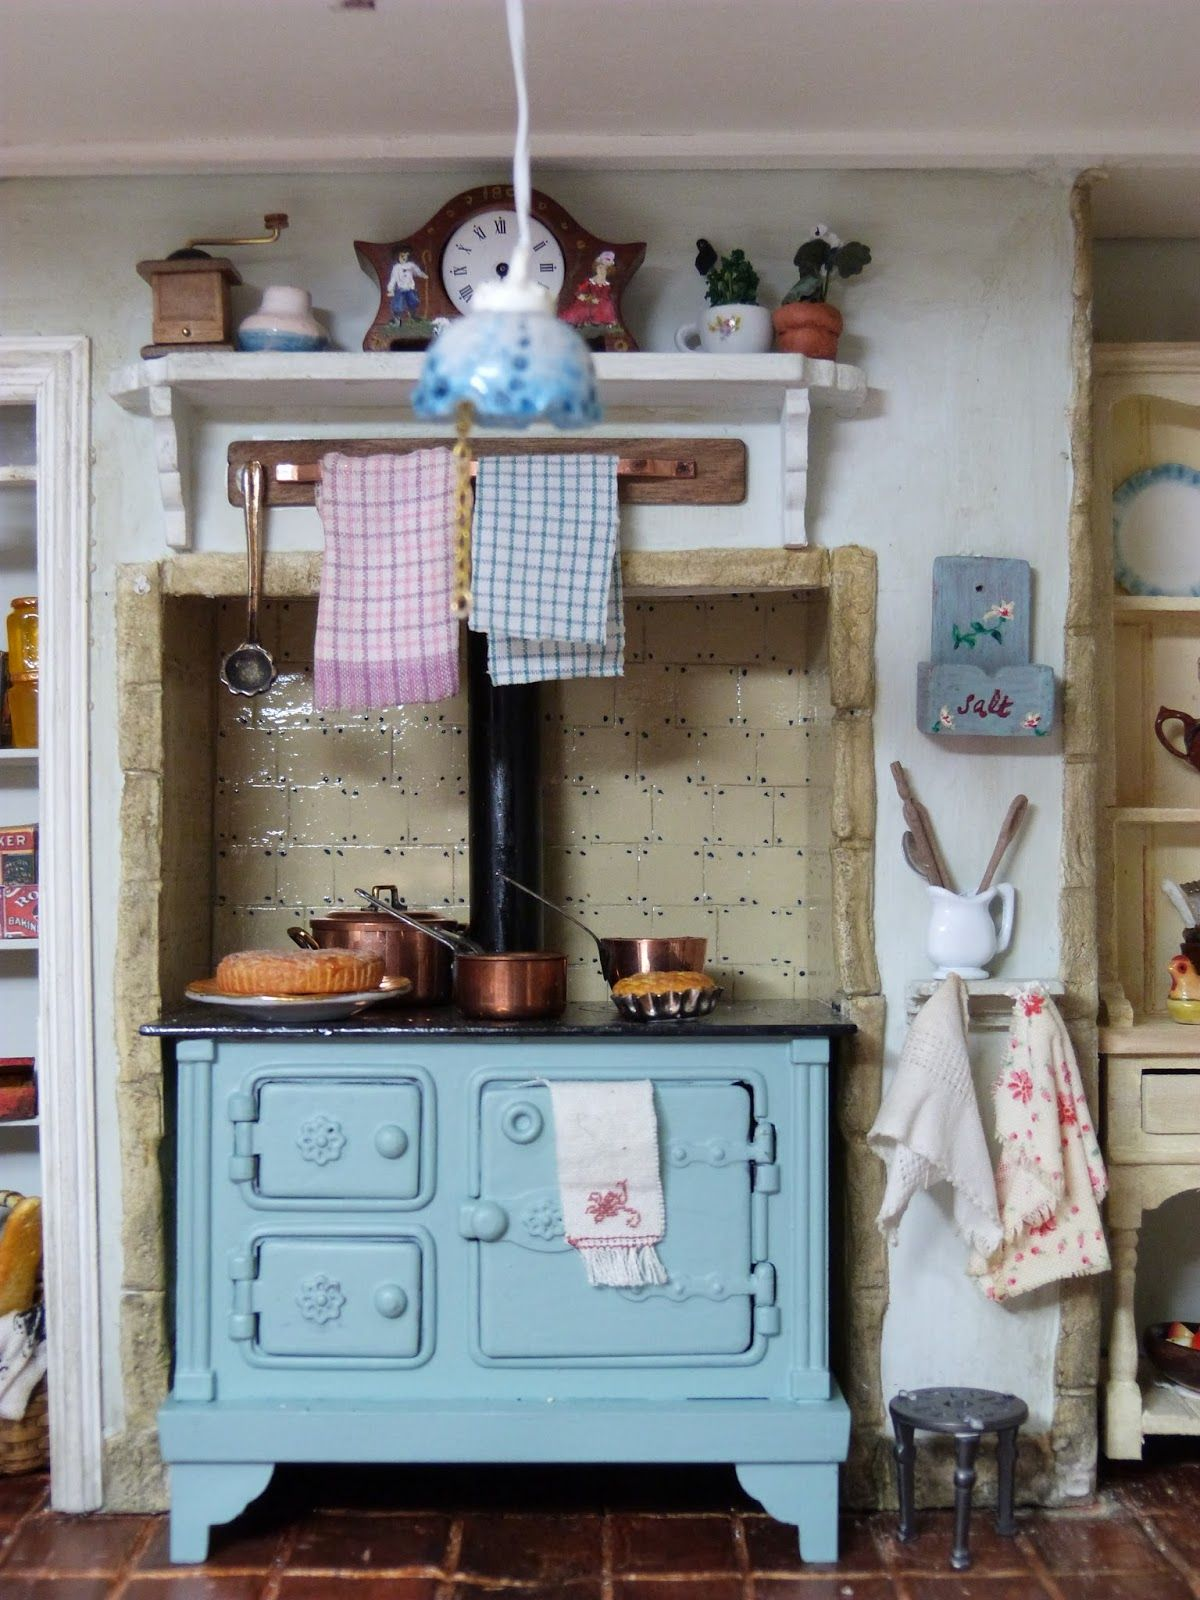 Miniature kitchen | Miniature rooms | Pinterest | Miniature kitchen ...